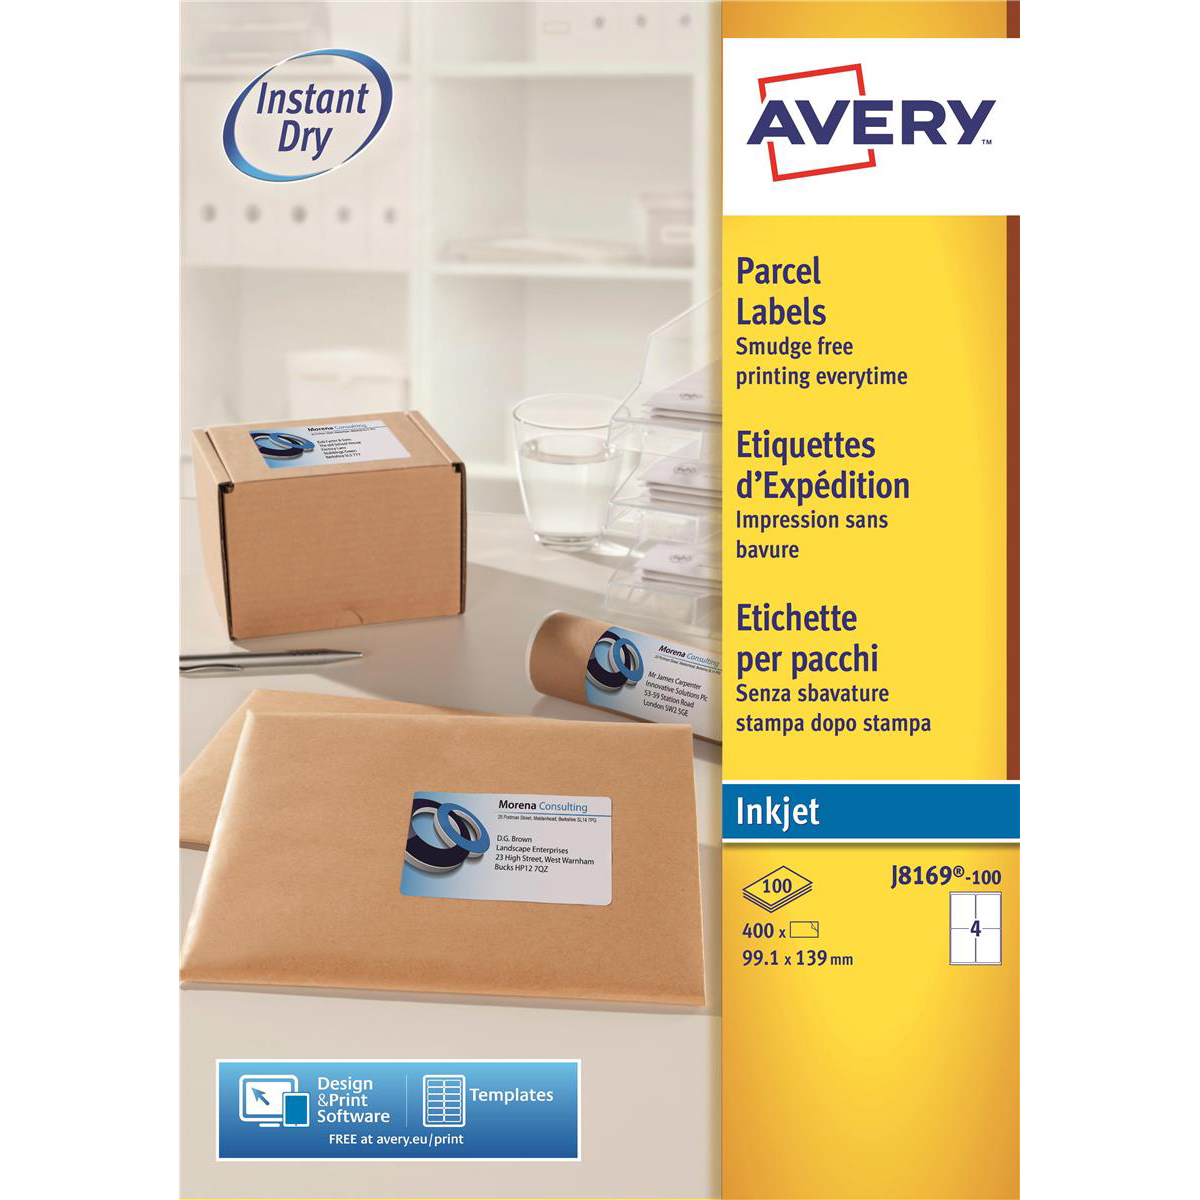 Avery Quick DRY Parcel Labels Inkjet 4 per Sheet 139x99.1mm White Ref J8169-100 400 Labels